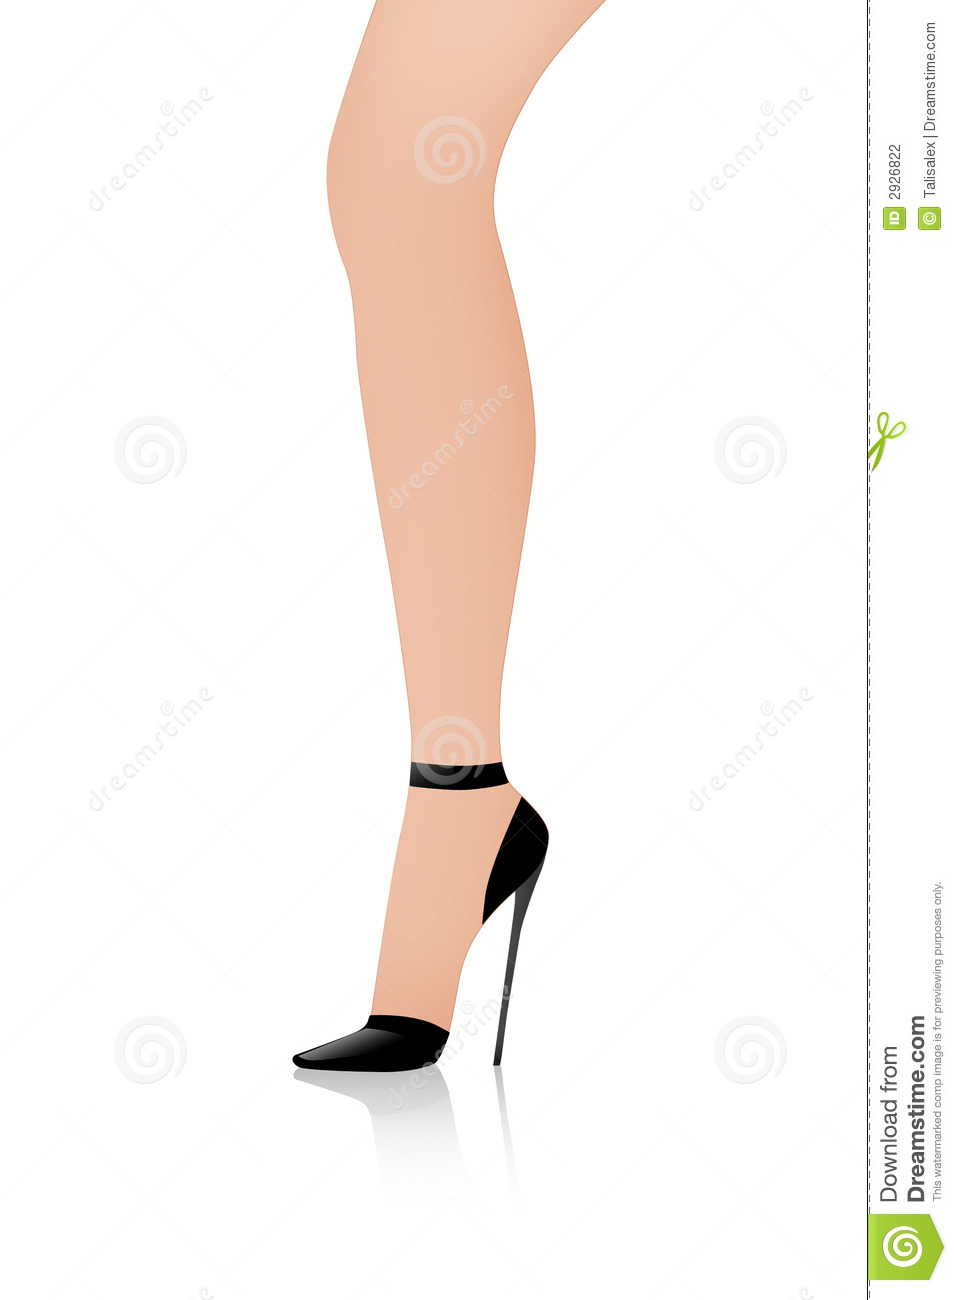 Cartoon Picture Of A Woman S Legs And Shoes